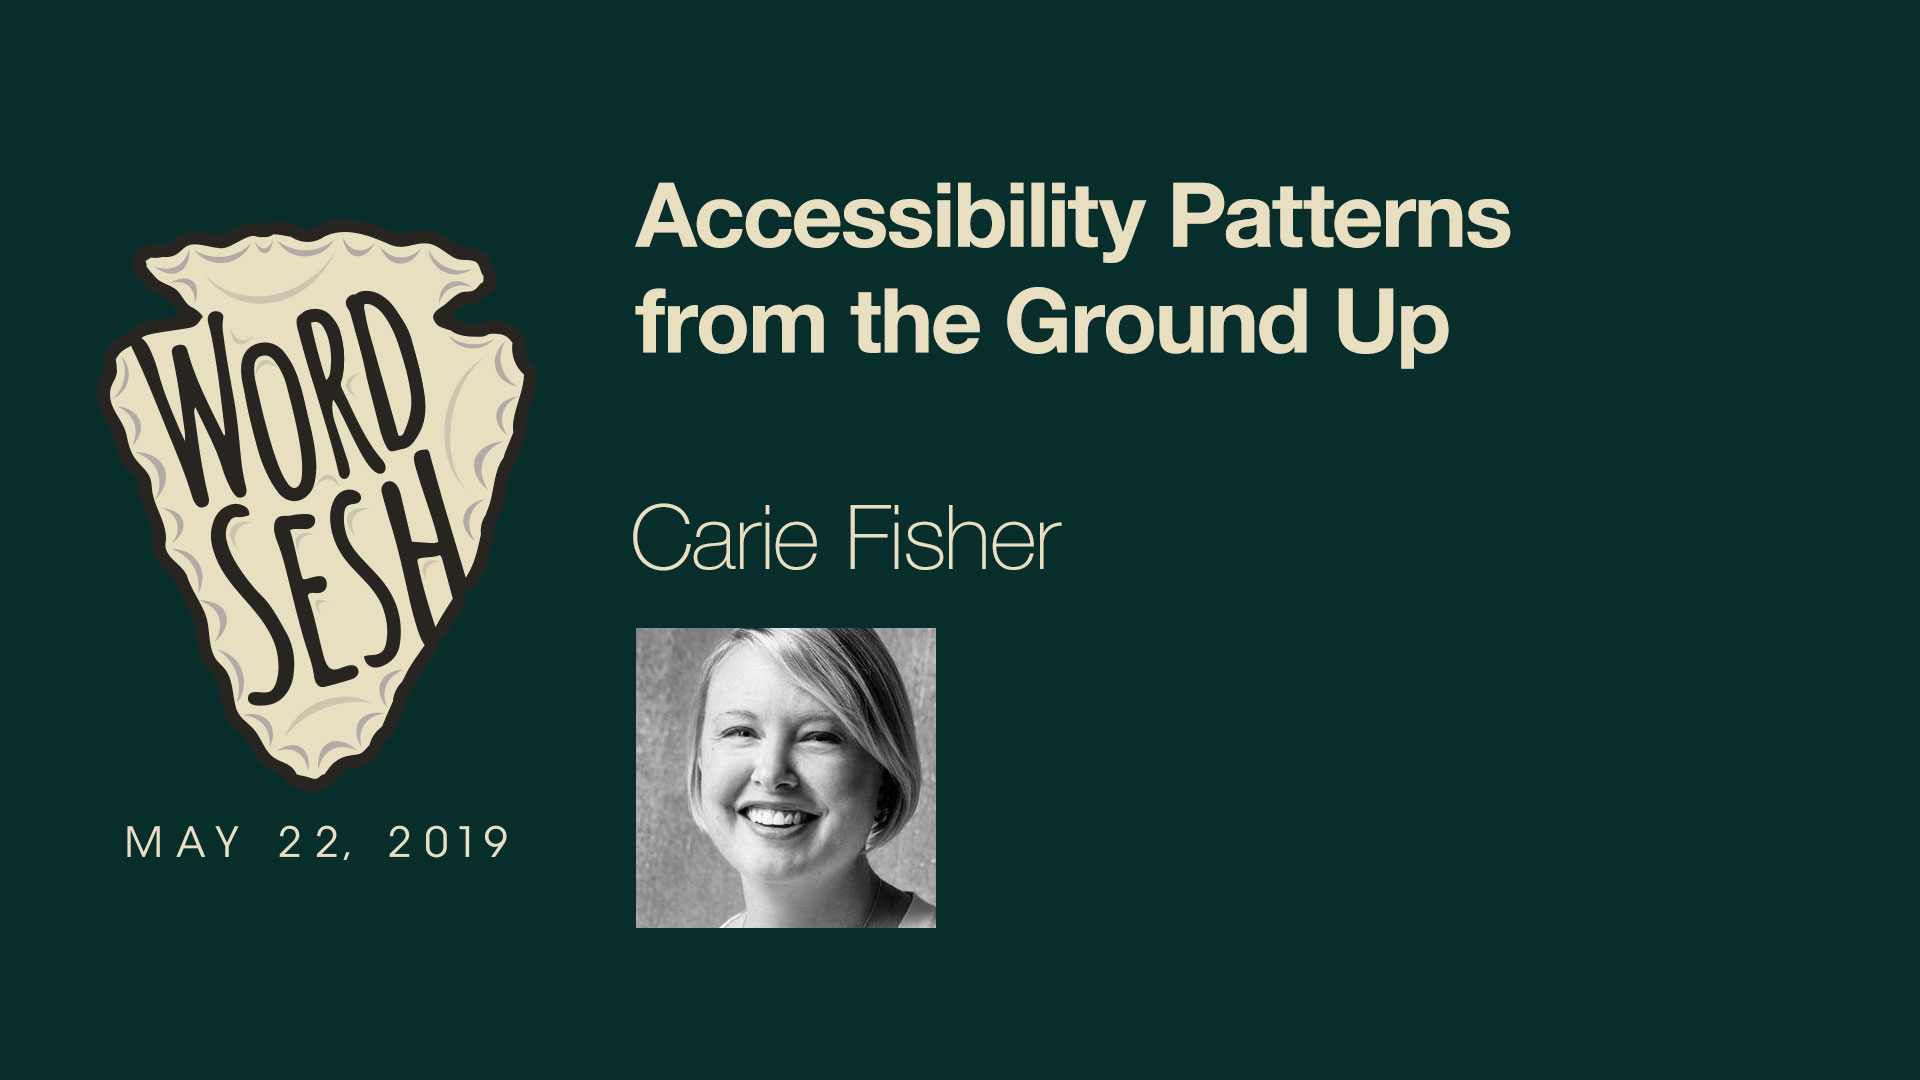 12-WordSesh-Accesibility-Patterns-Carie-Fisher